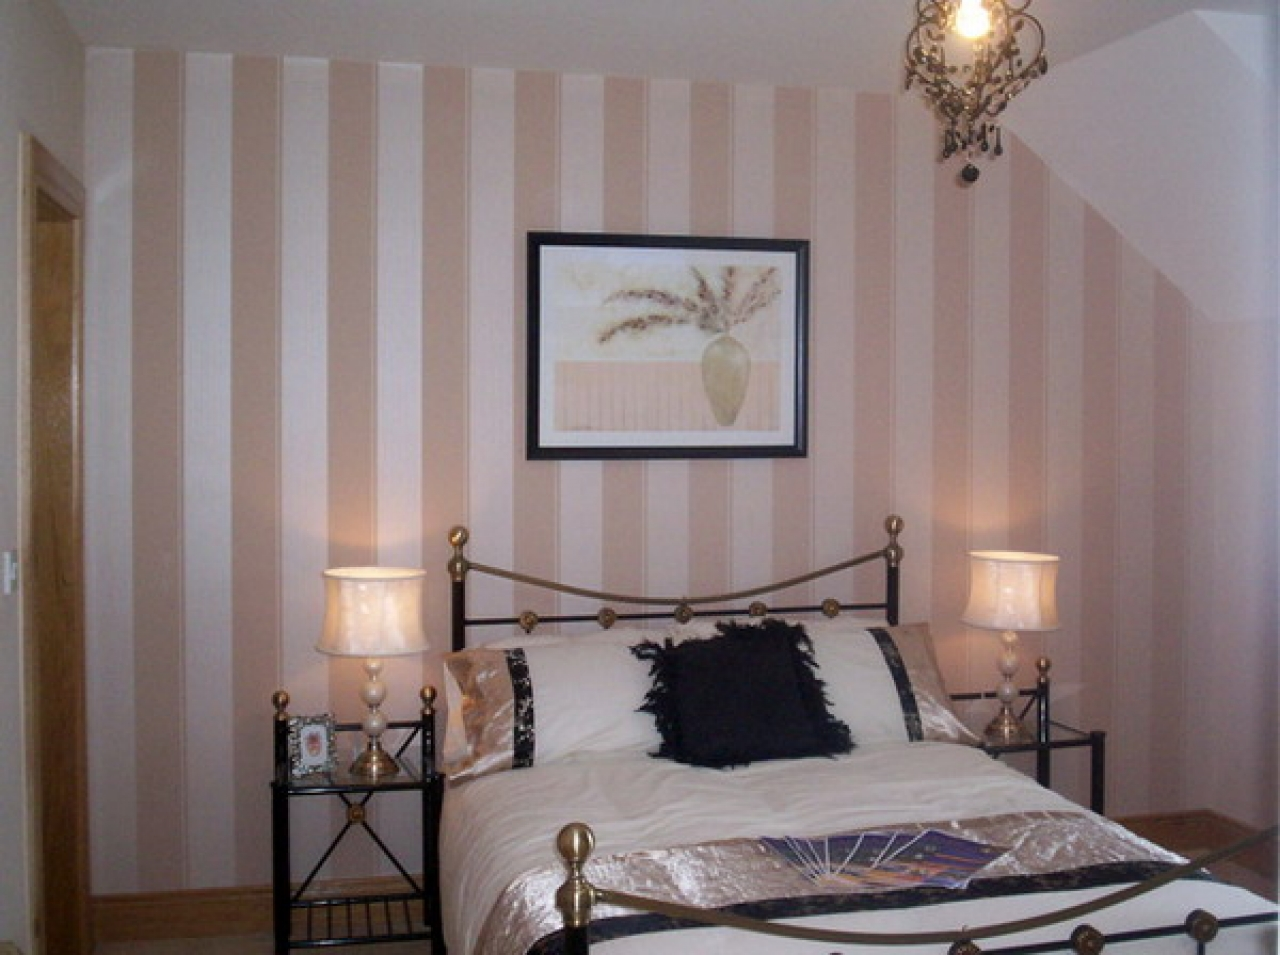 Small bedroom wallpaper borders ideas small master bedroom 1280x955